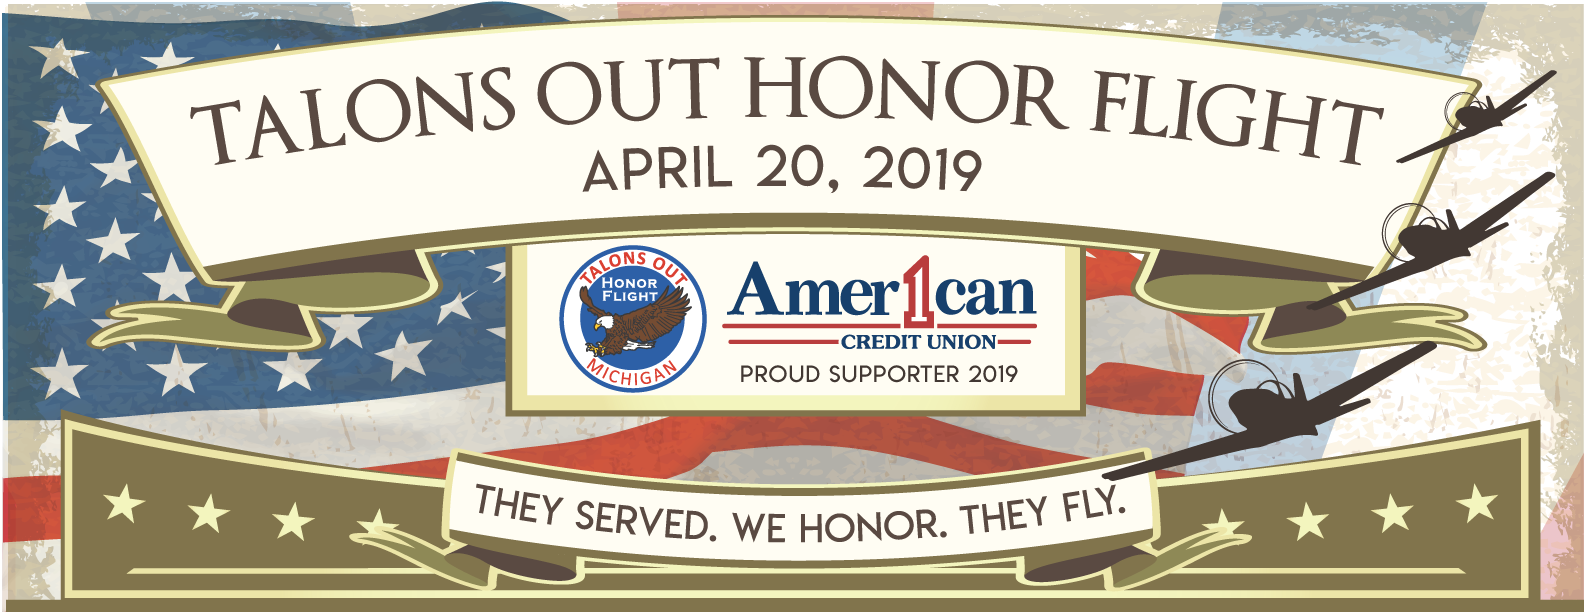 American 1 Credit Union is a proud sponsor of the 2019 Talons Out Honor Flight's Welcome Back Party